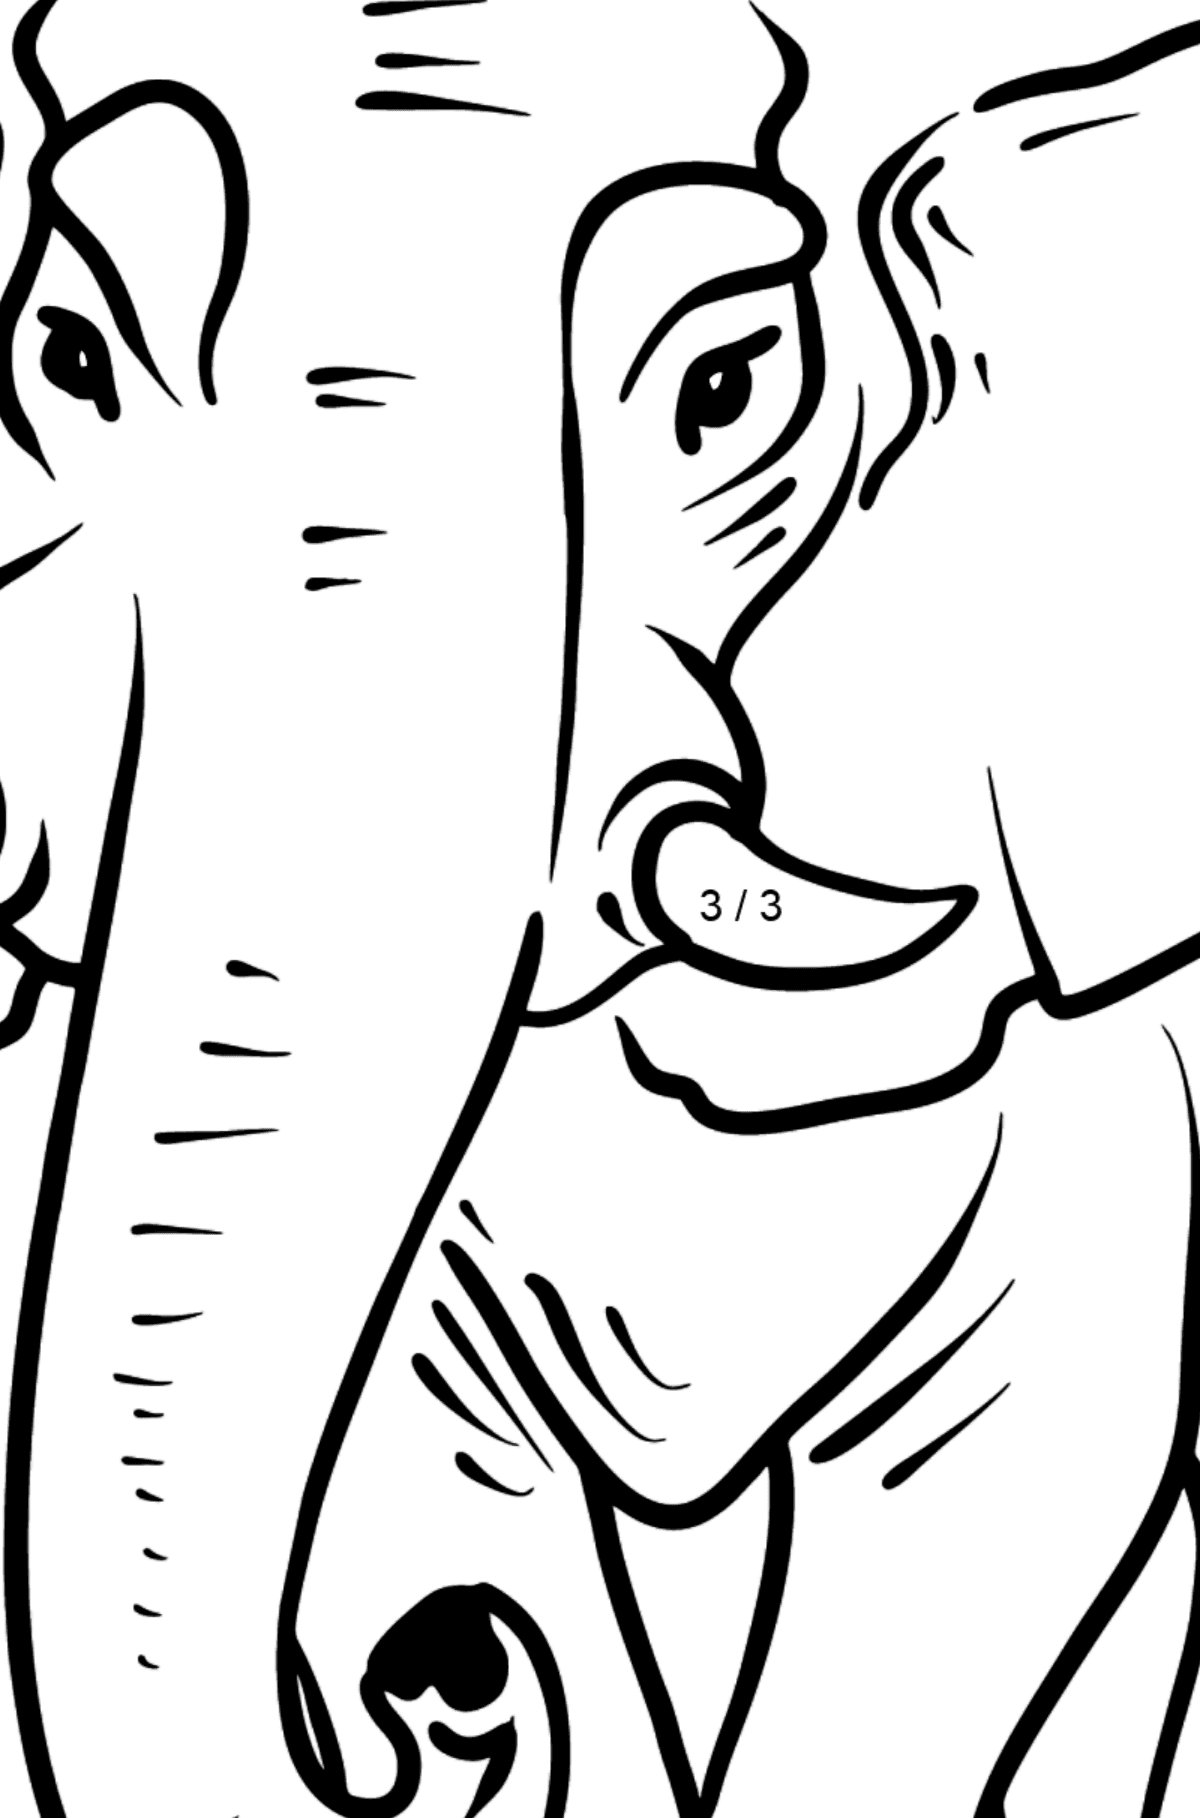 Elephant coloring page - Math Coloring - Division for Kids